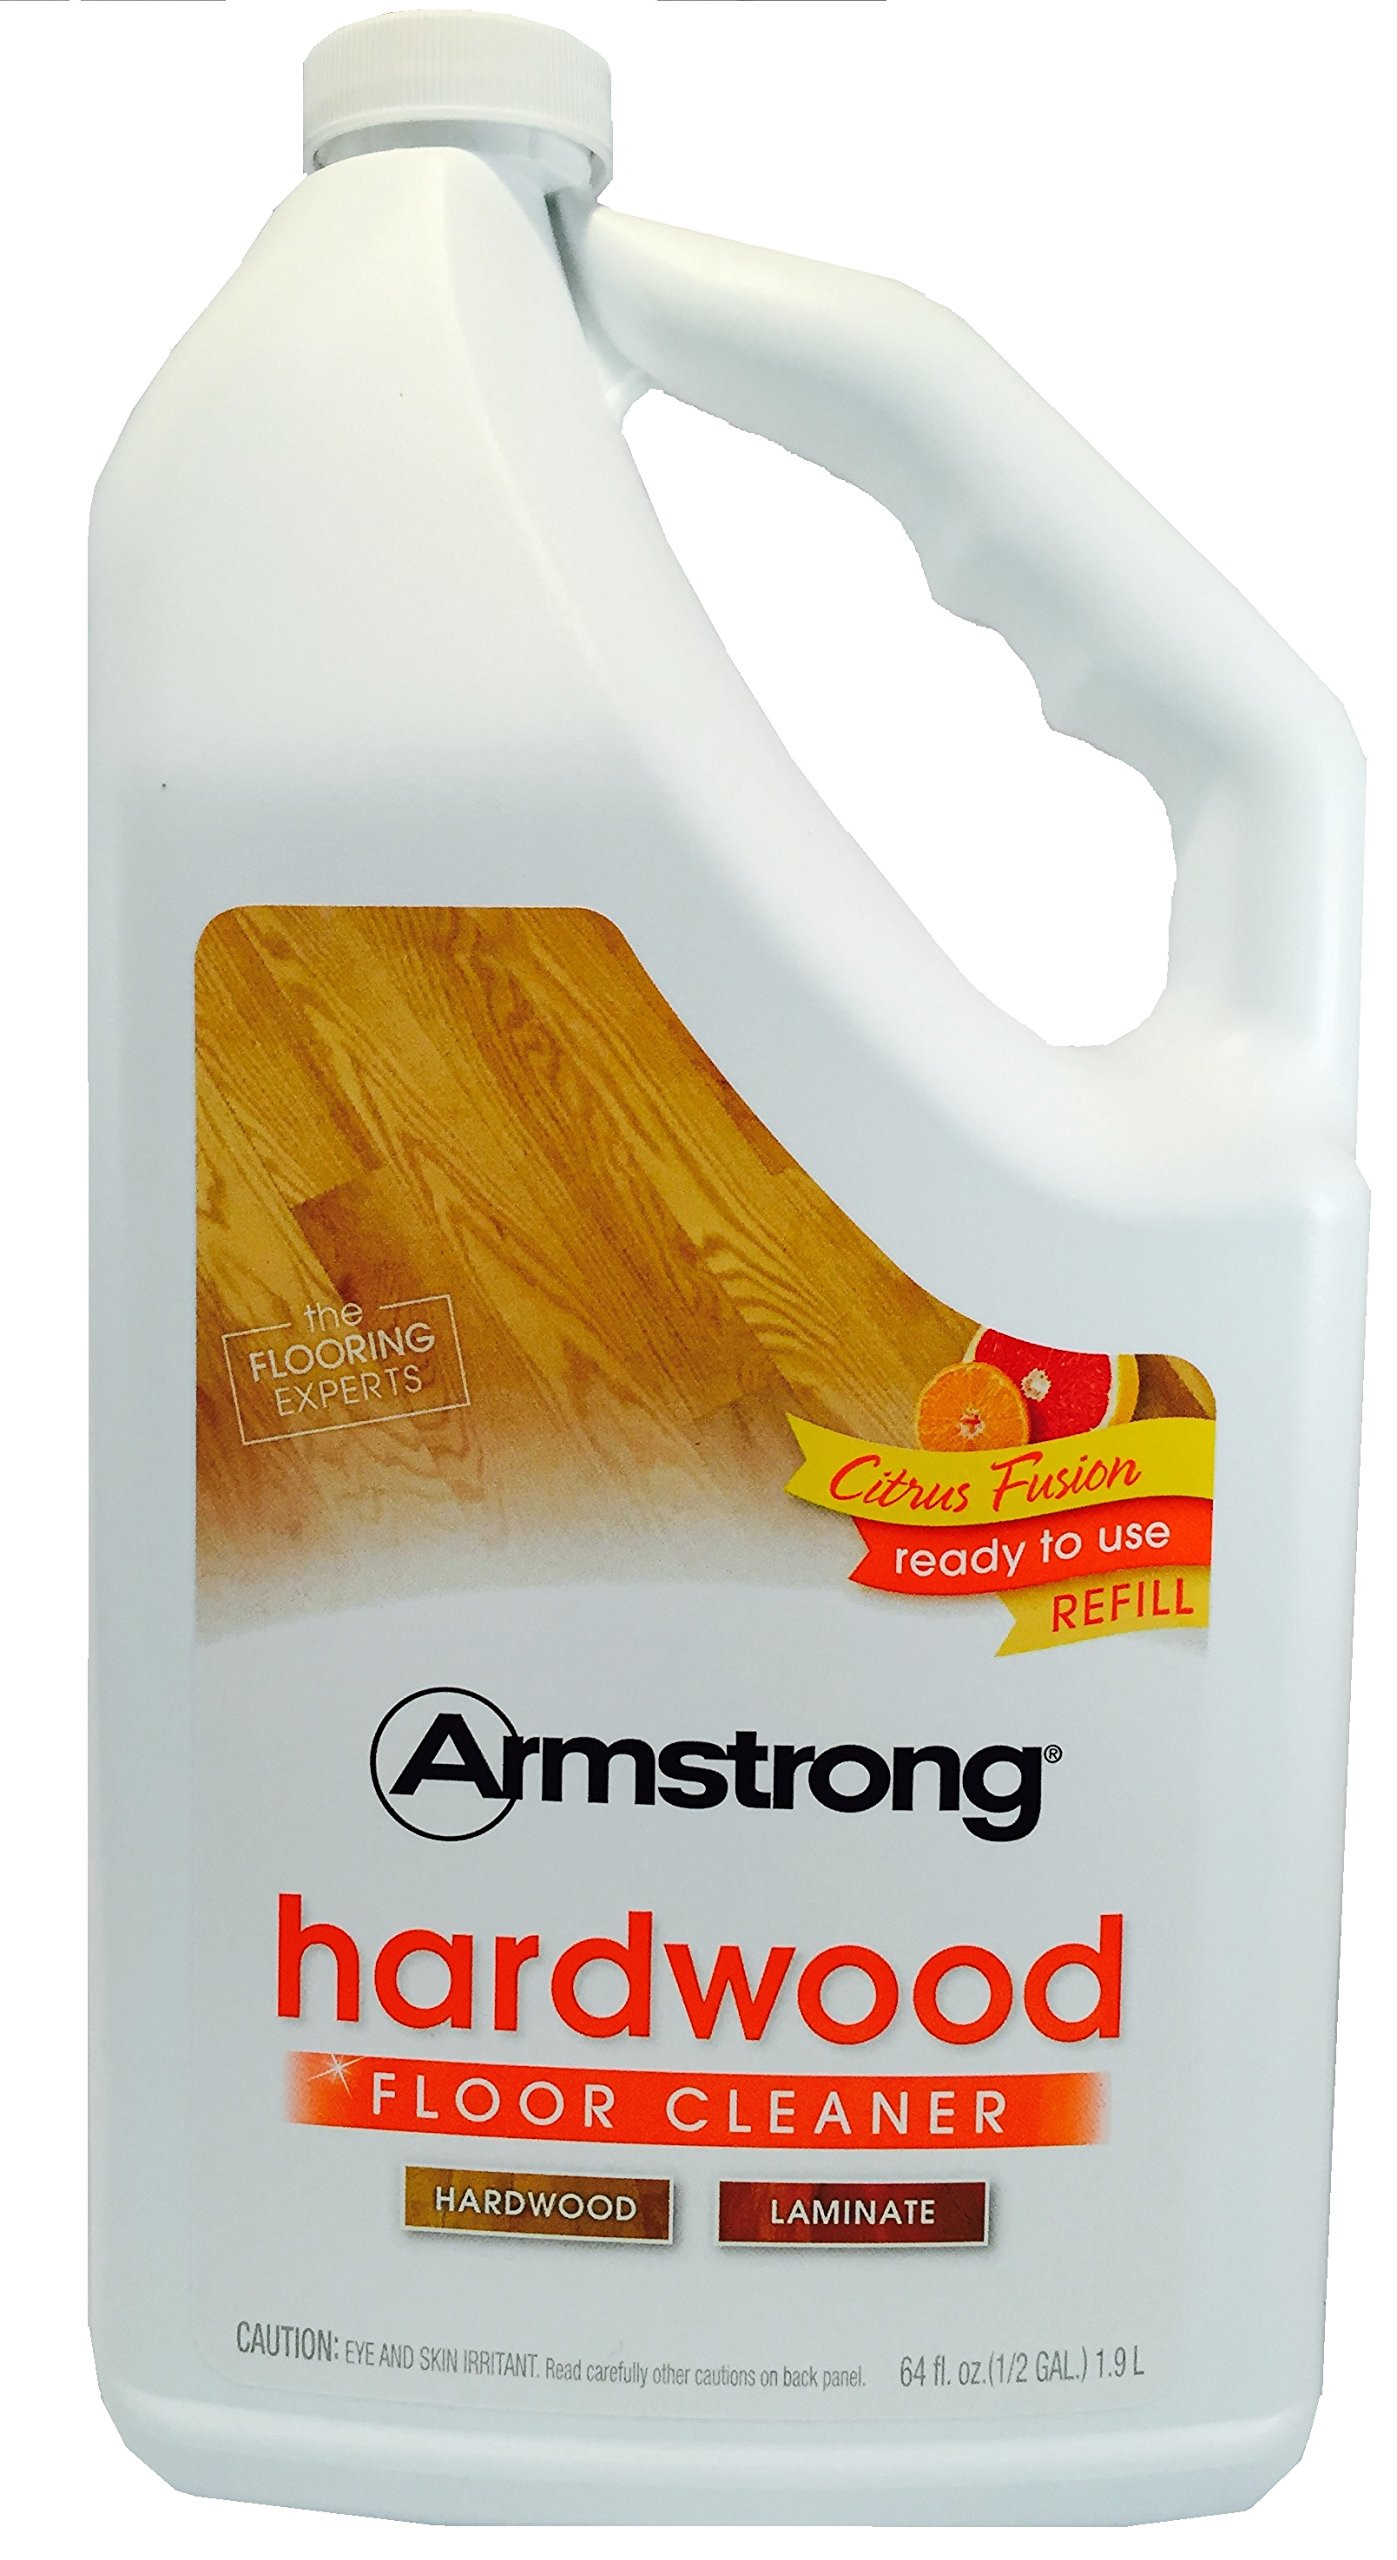 armstrong hardwood and laminate floor cleaner 32 oz spray bottle of amazon com armstrong multi surface floor cleaner concentrate 32oz with regard to armstrong hardwood and laminate floor cleaner ready to use refill citrus fusion 64oz 64 oz